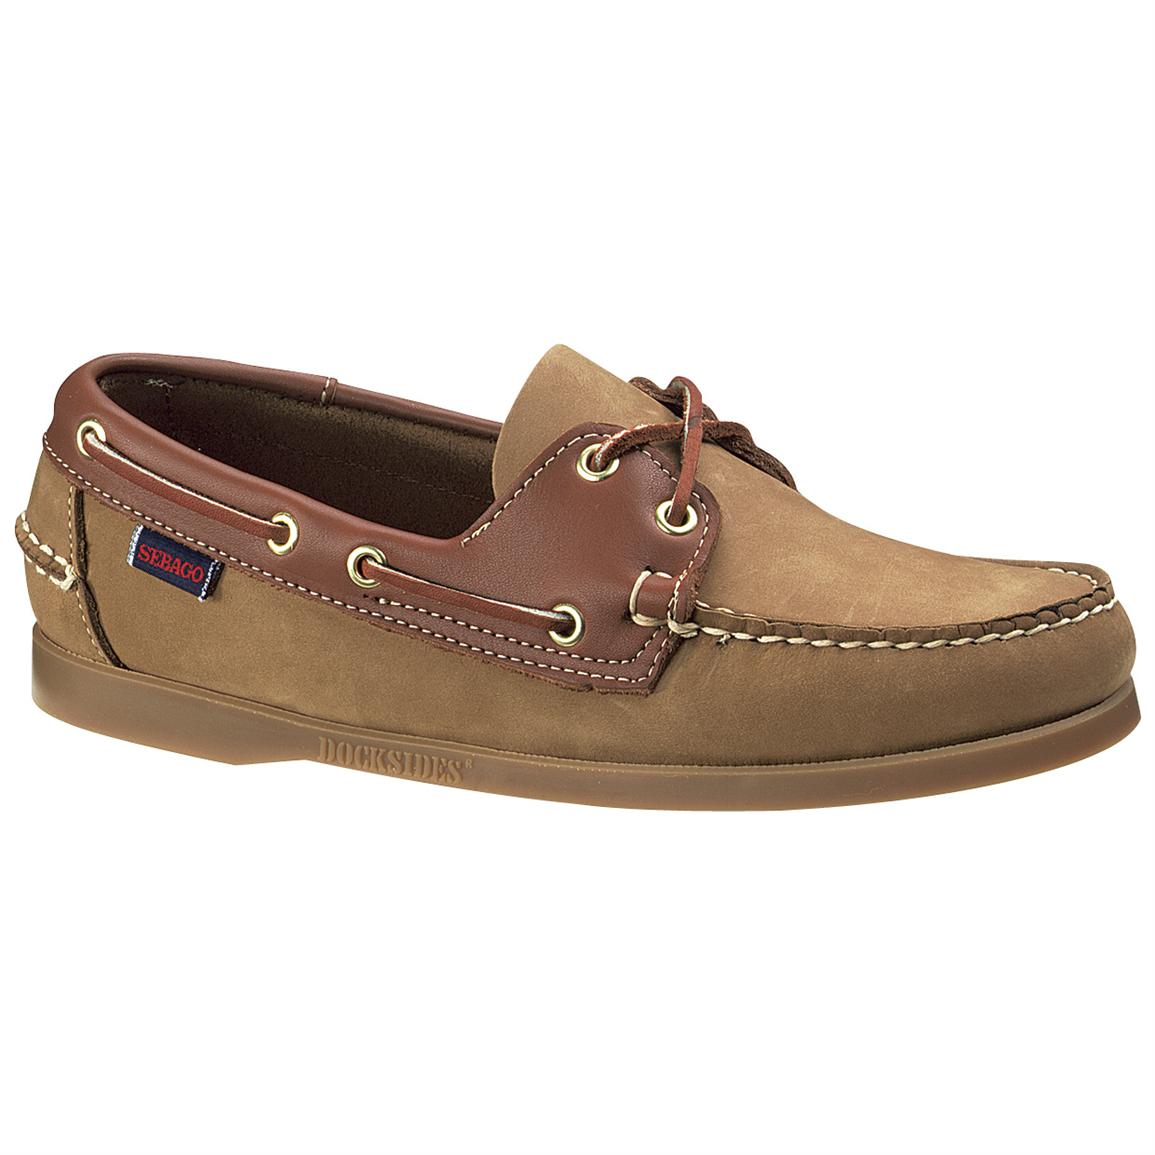 Men's Sebago® Spinnaker Shoes, Tan